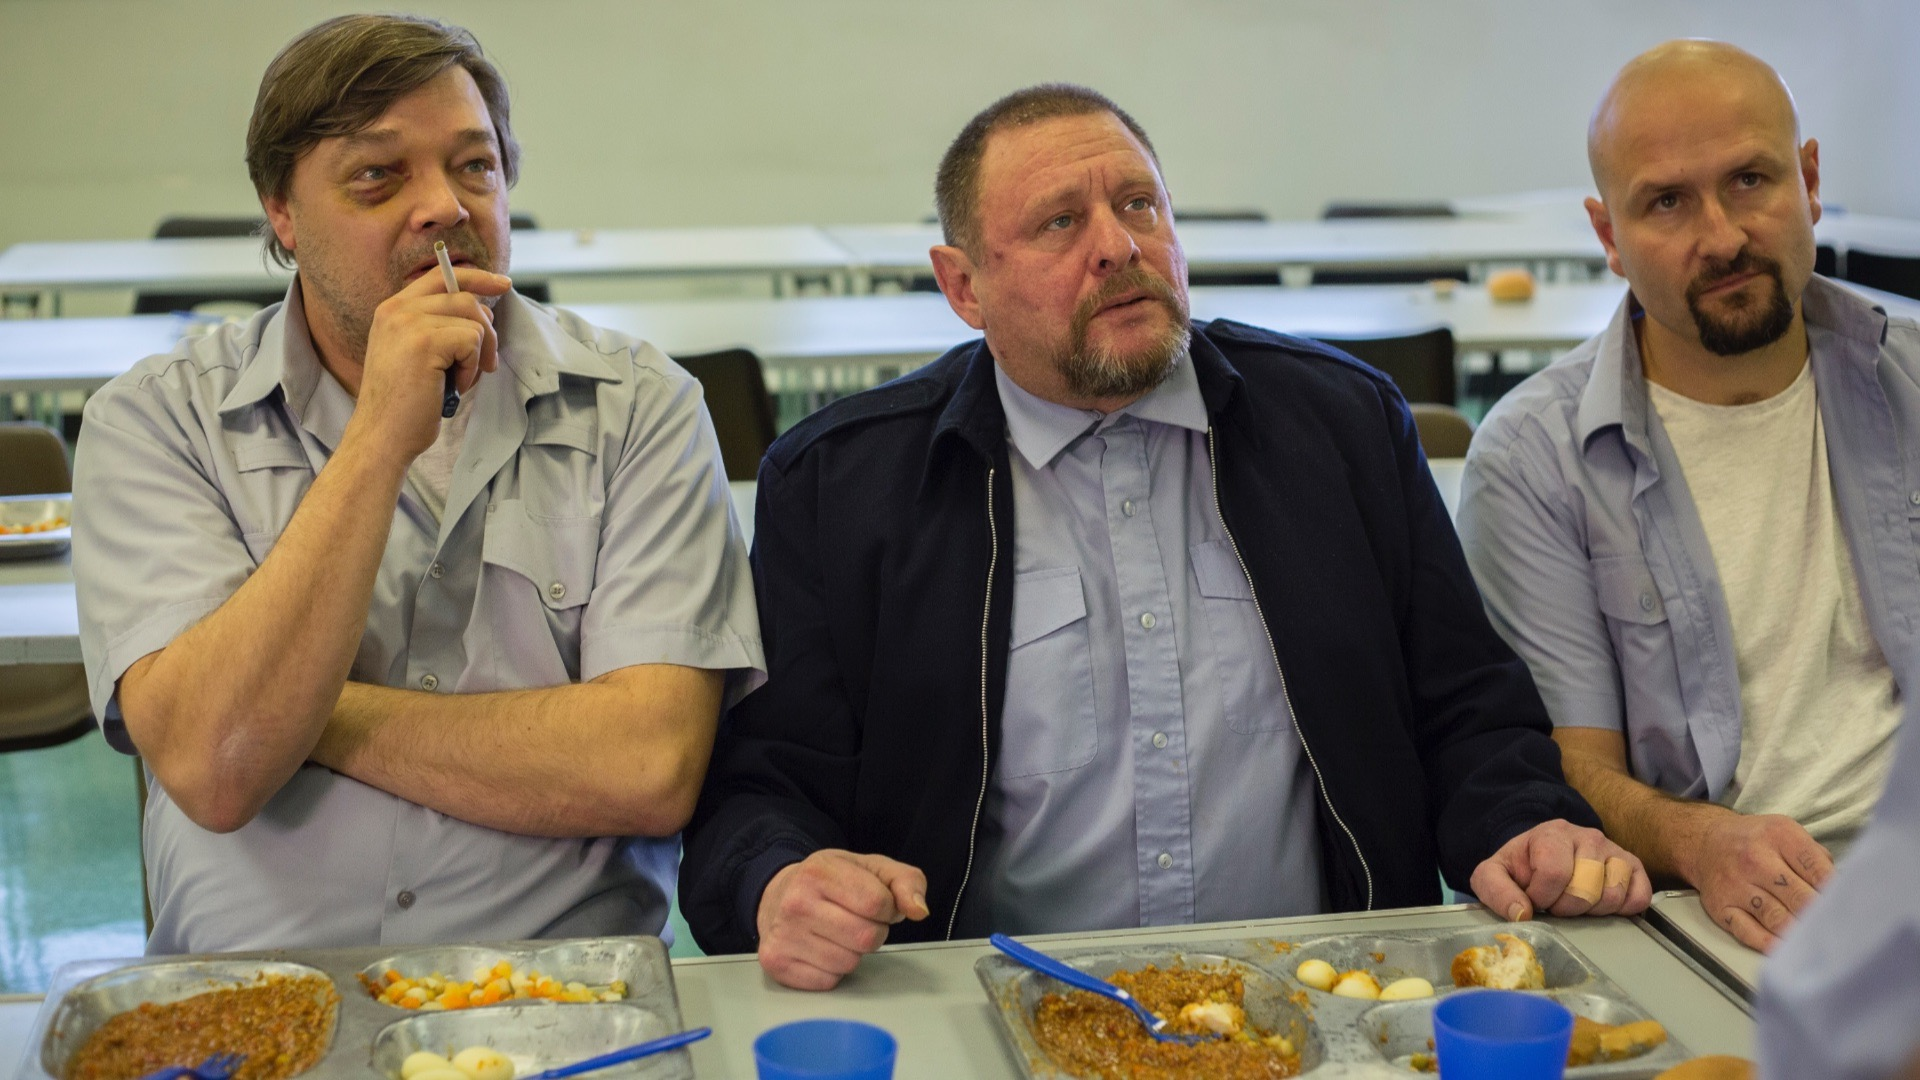 Shaun Ryder in Rise of the Footsoldier 3.